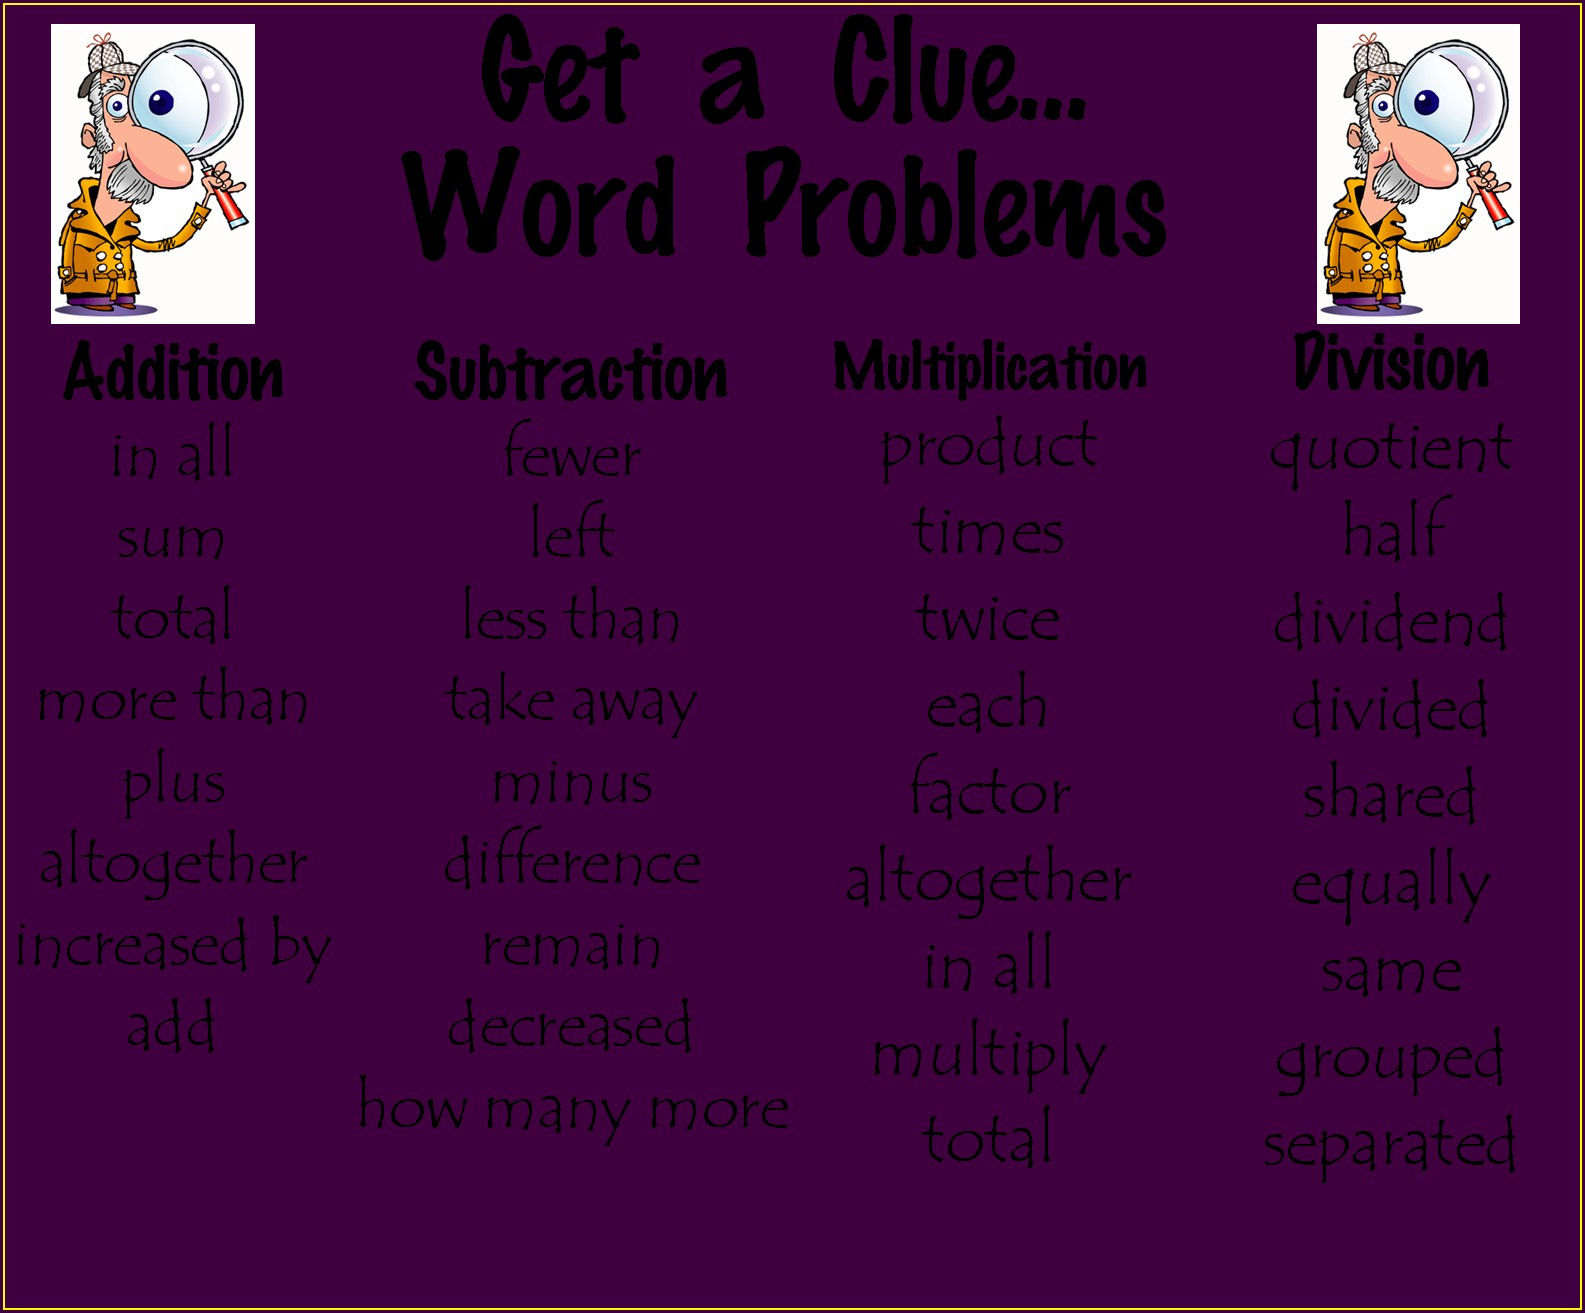 Word Problems Worksheet For Grade 3